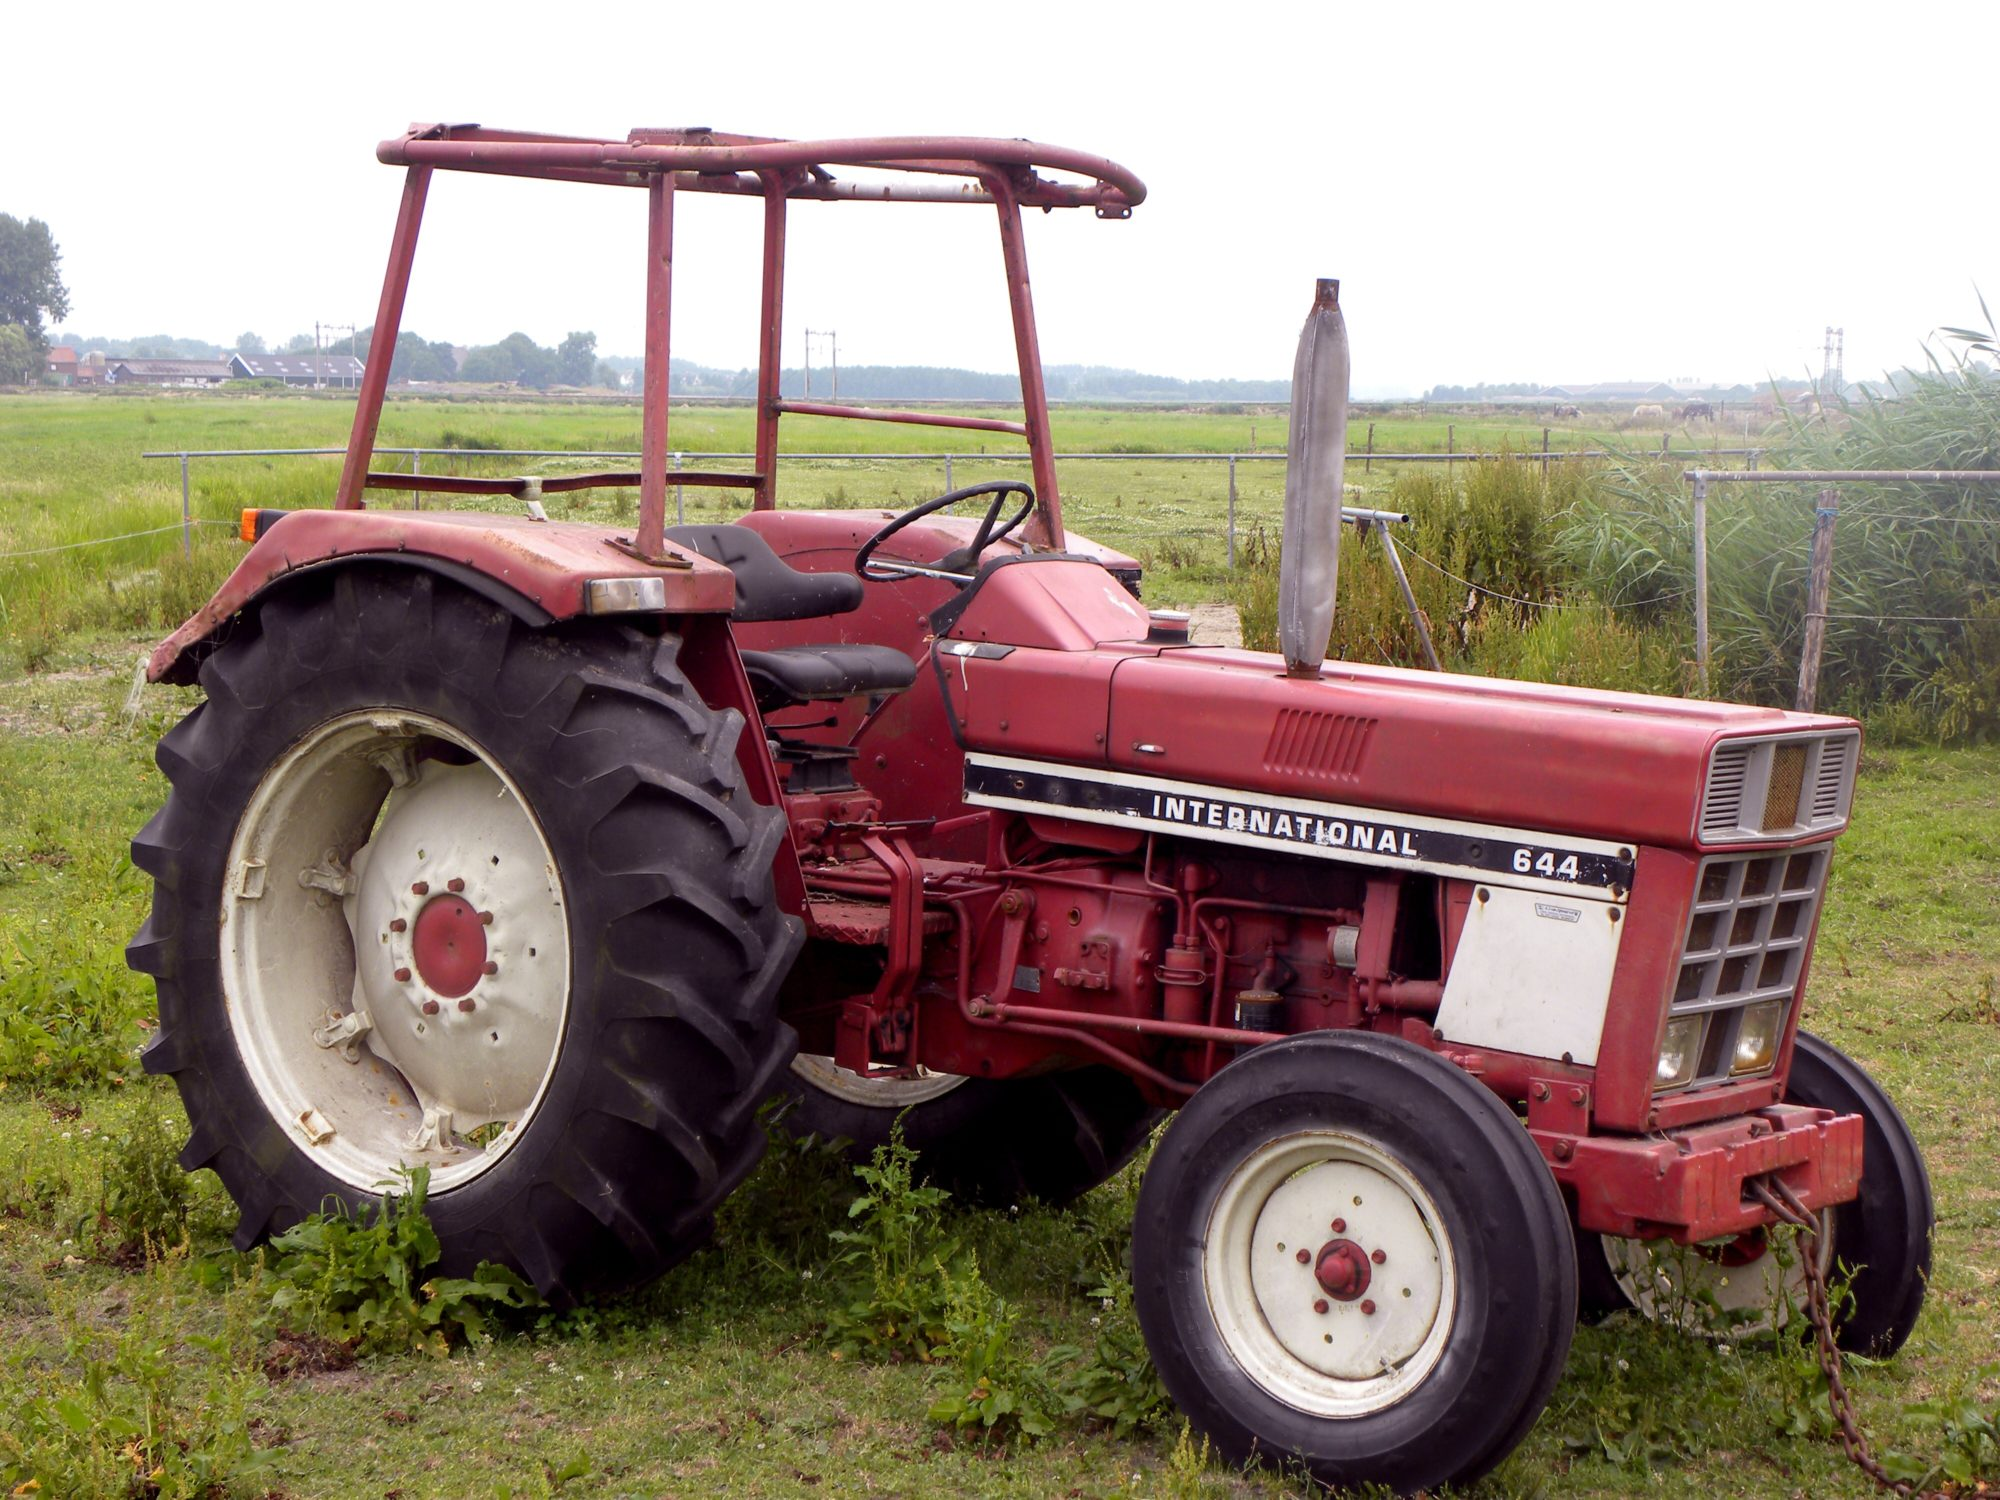 International harvester 644